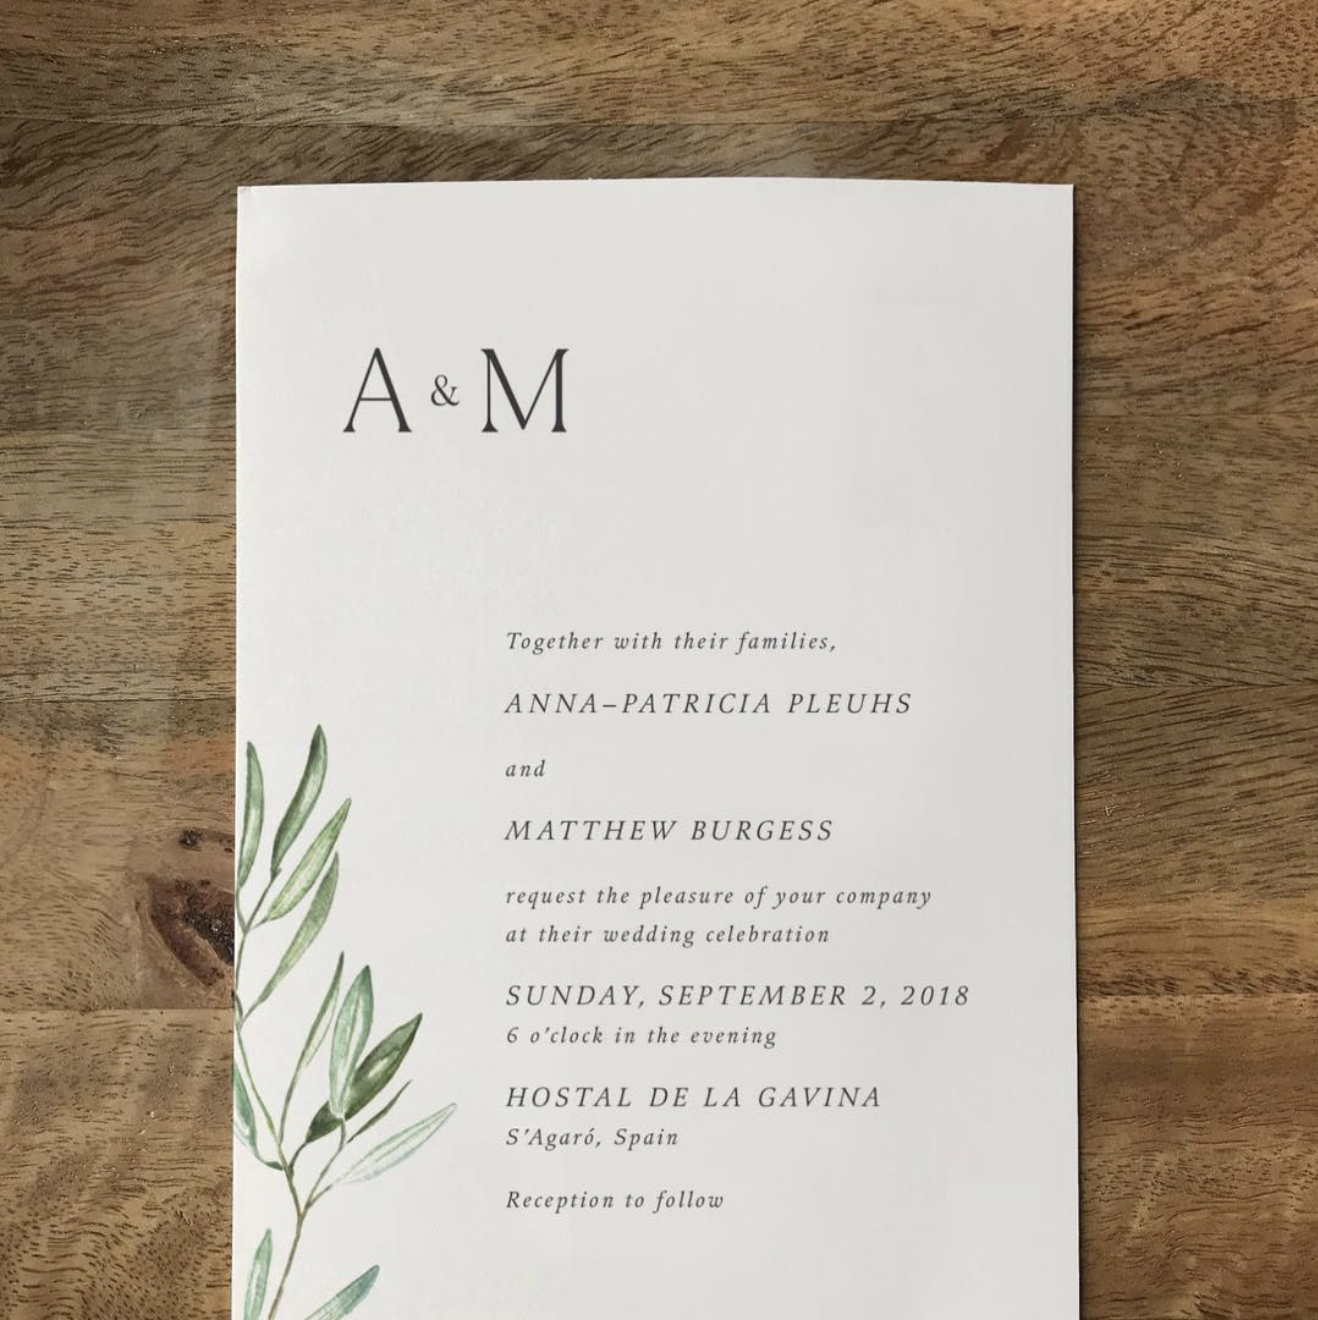 Wedding Invitation Fonts.Trending Wedding Invitation Fonts For 2018 19